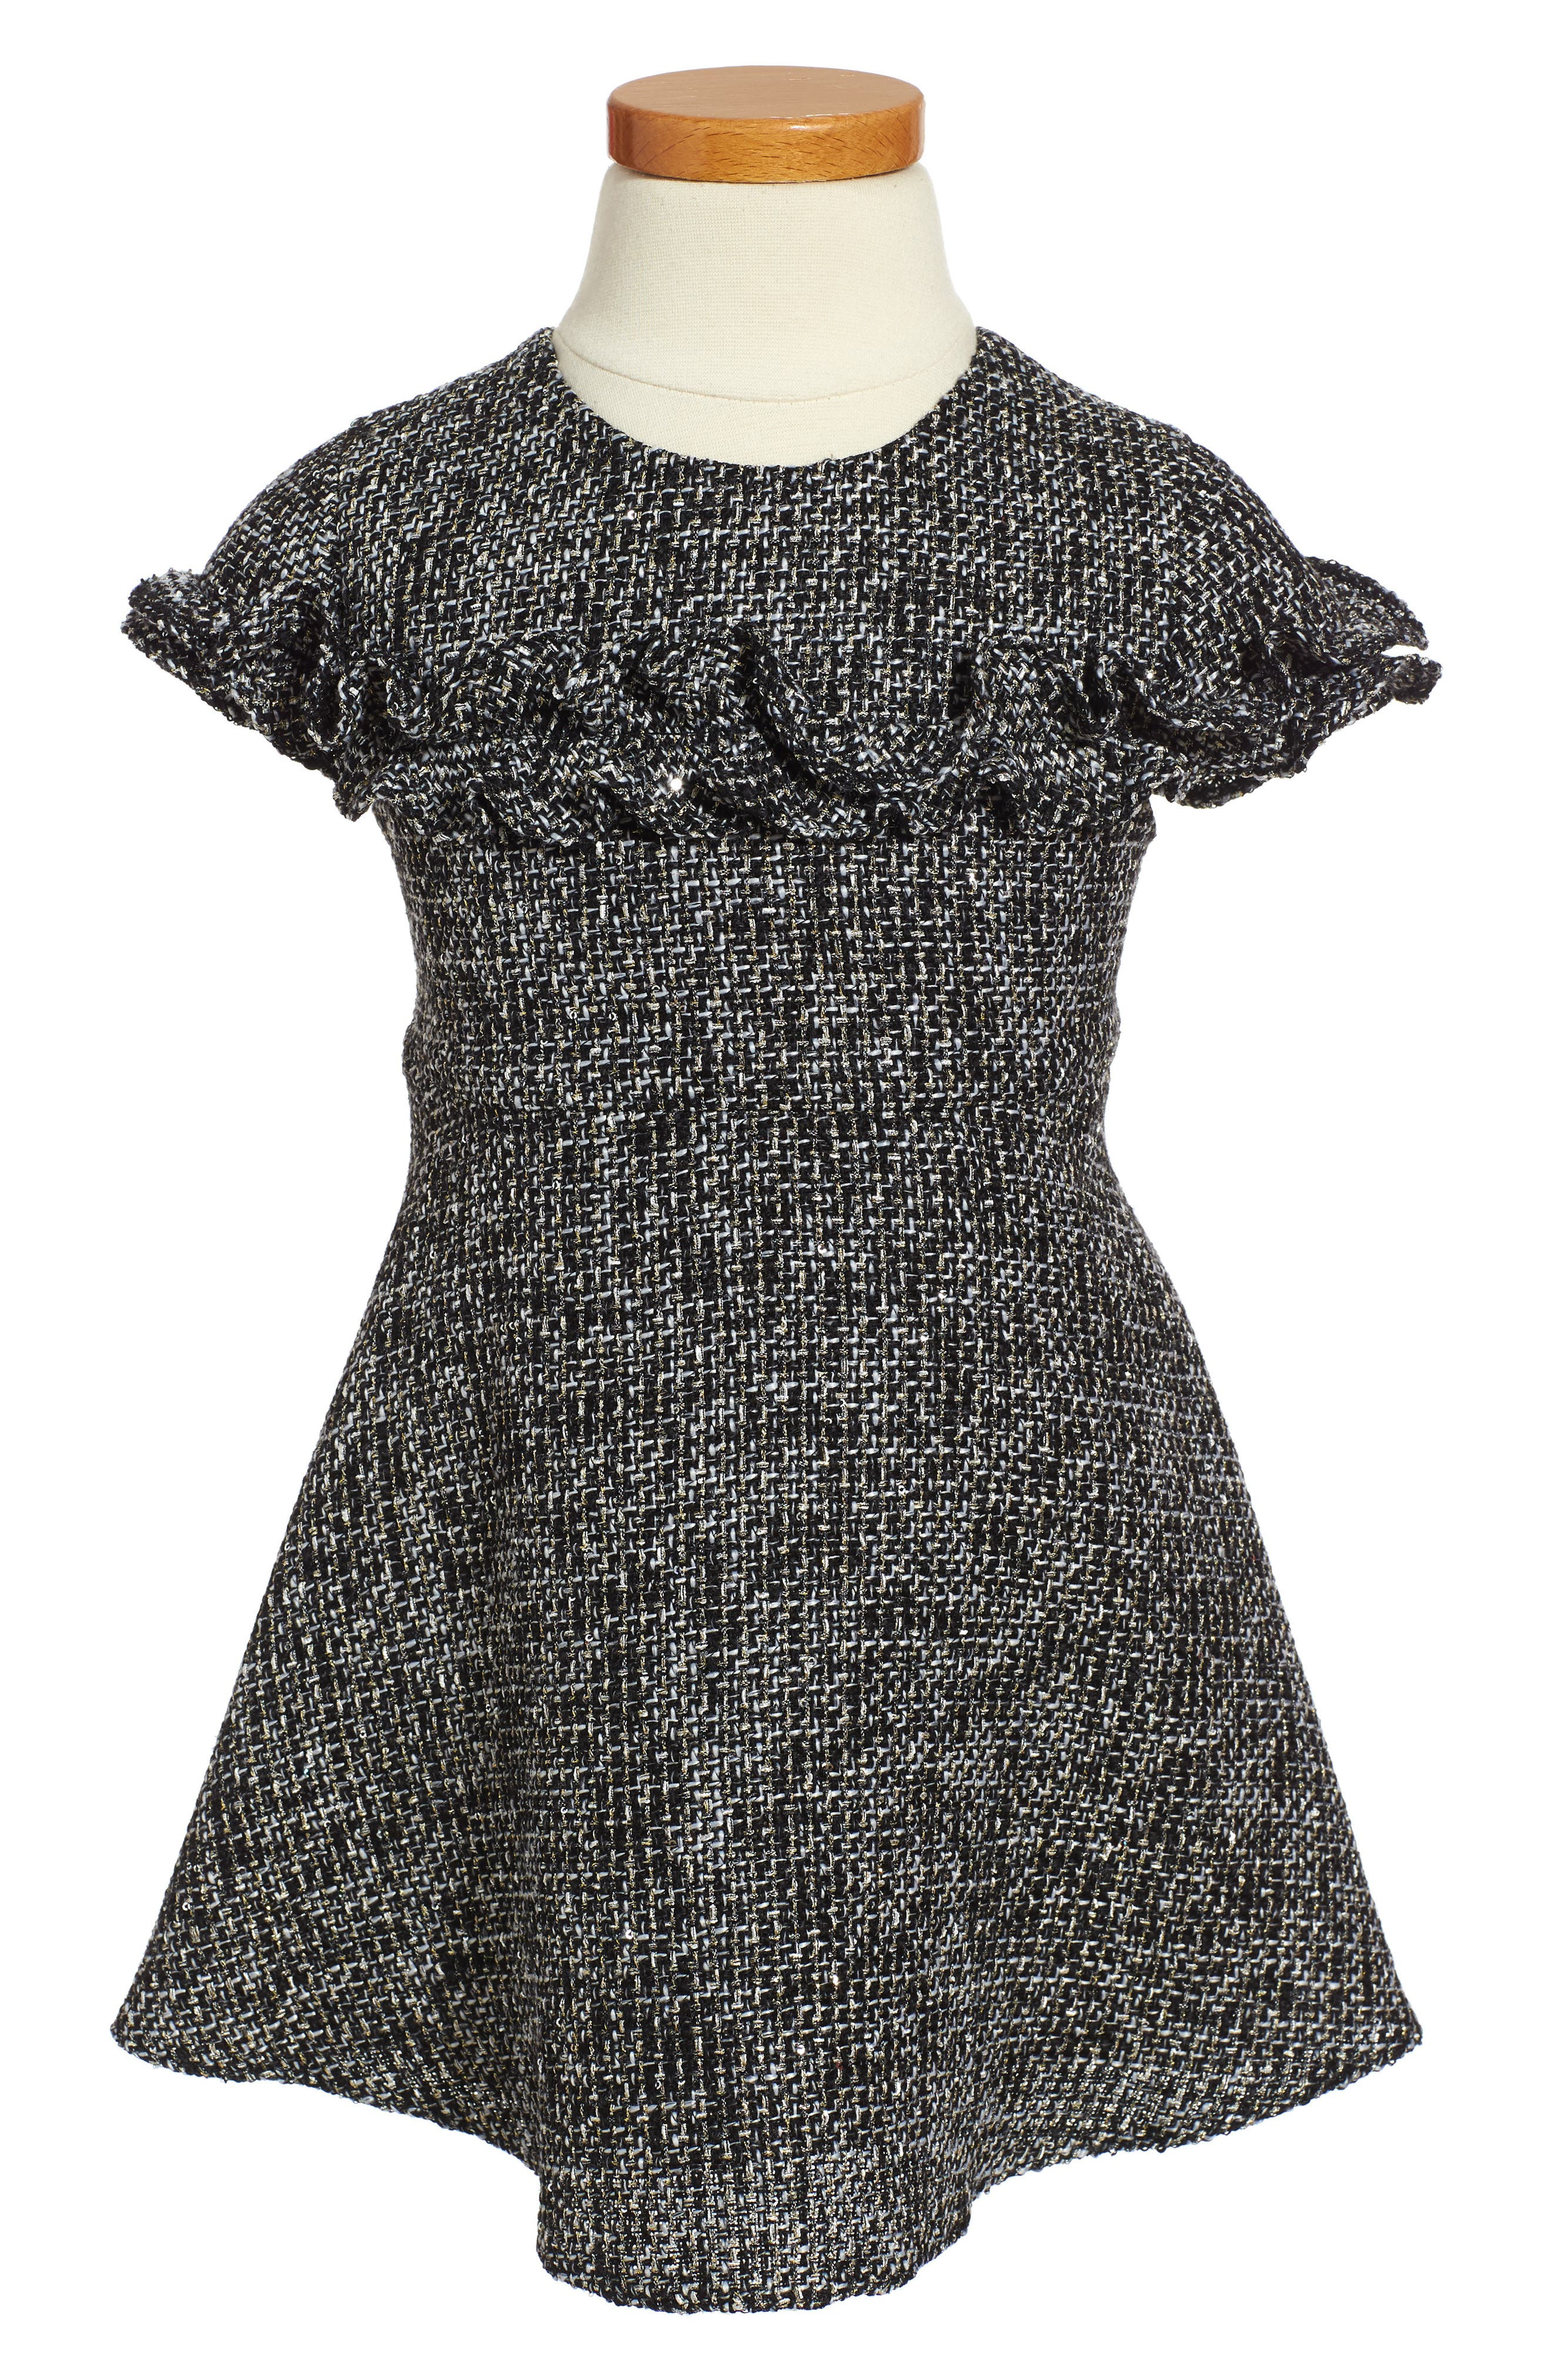 Sequin Tweed Dress,                             Main thumbnail 1, color,                             001